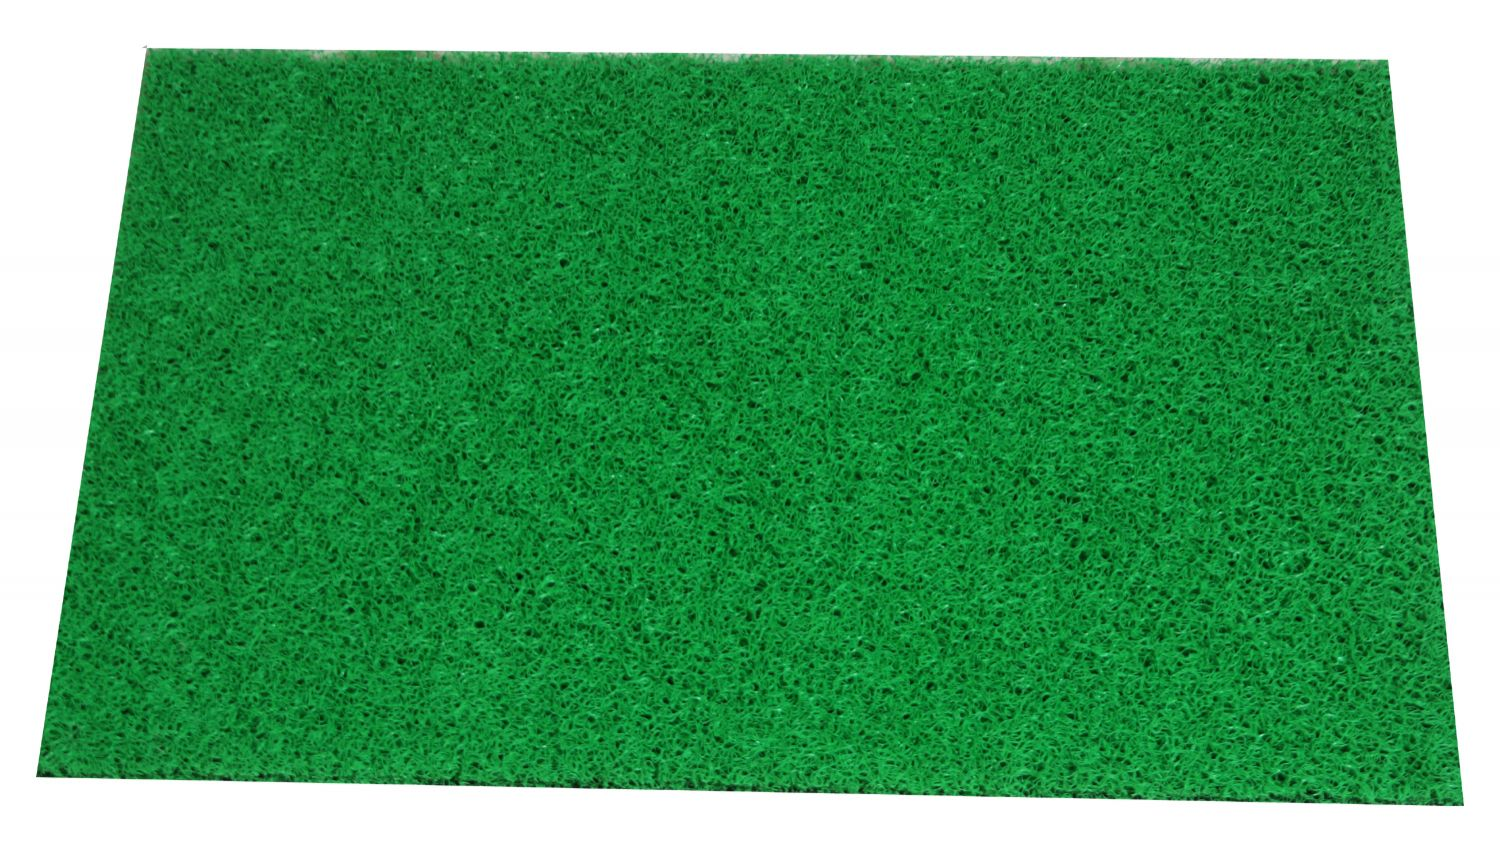 Kuber Industries™ Dirt Rubb Off Clean Footwear PVC Thick Doormat for Offices,Hotel ,Restaurtaurant, Home,Shop Color- Green Size : 60 cm x 38 cm x 1.5 cm (Code-D01)